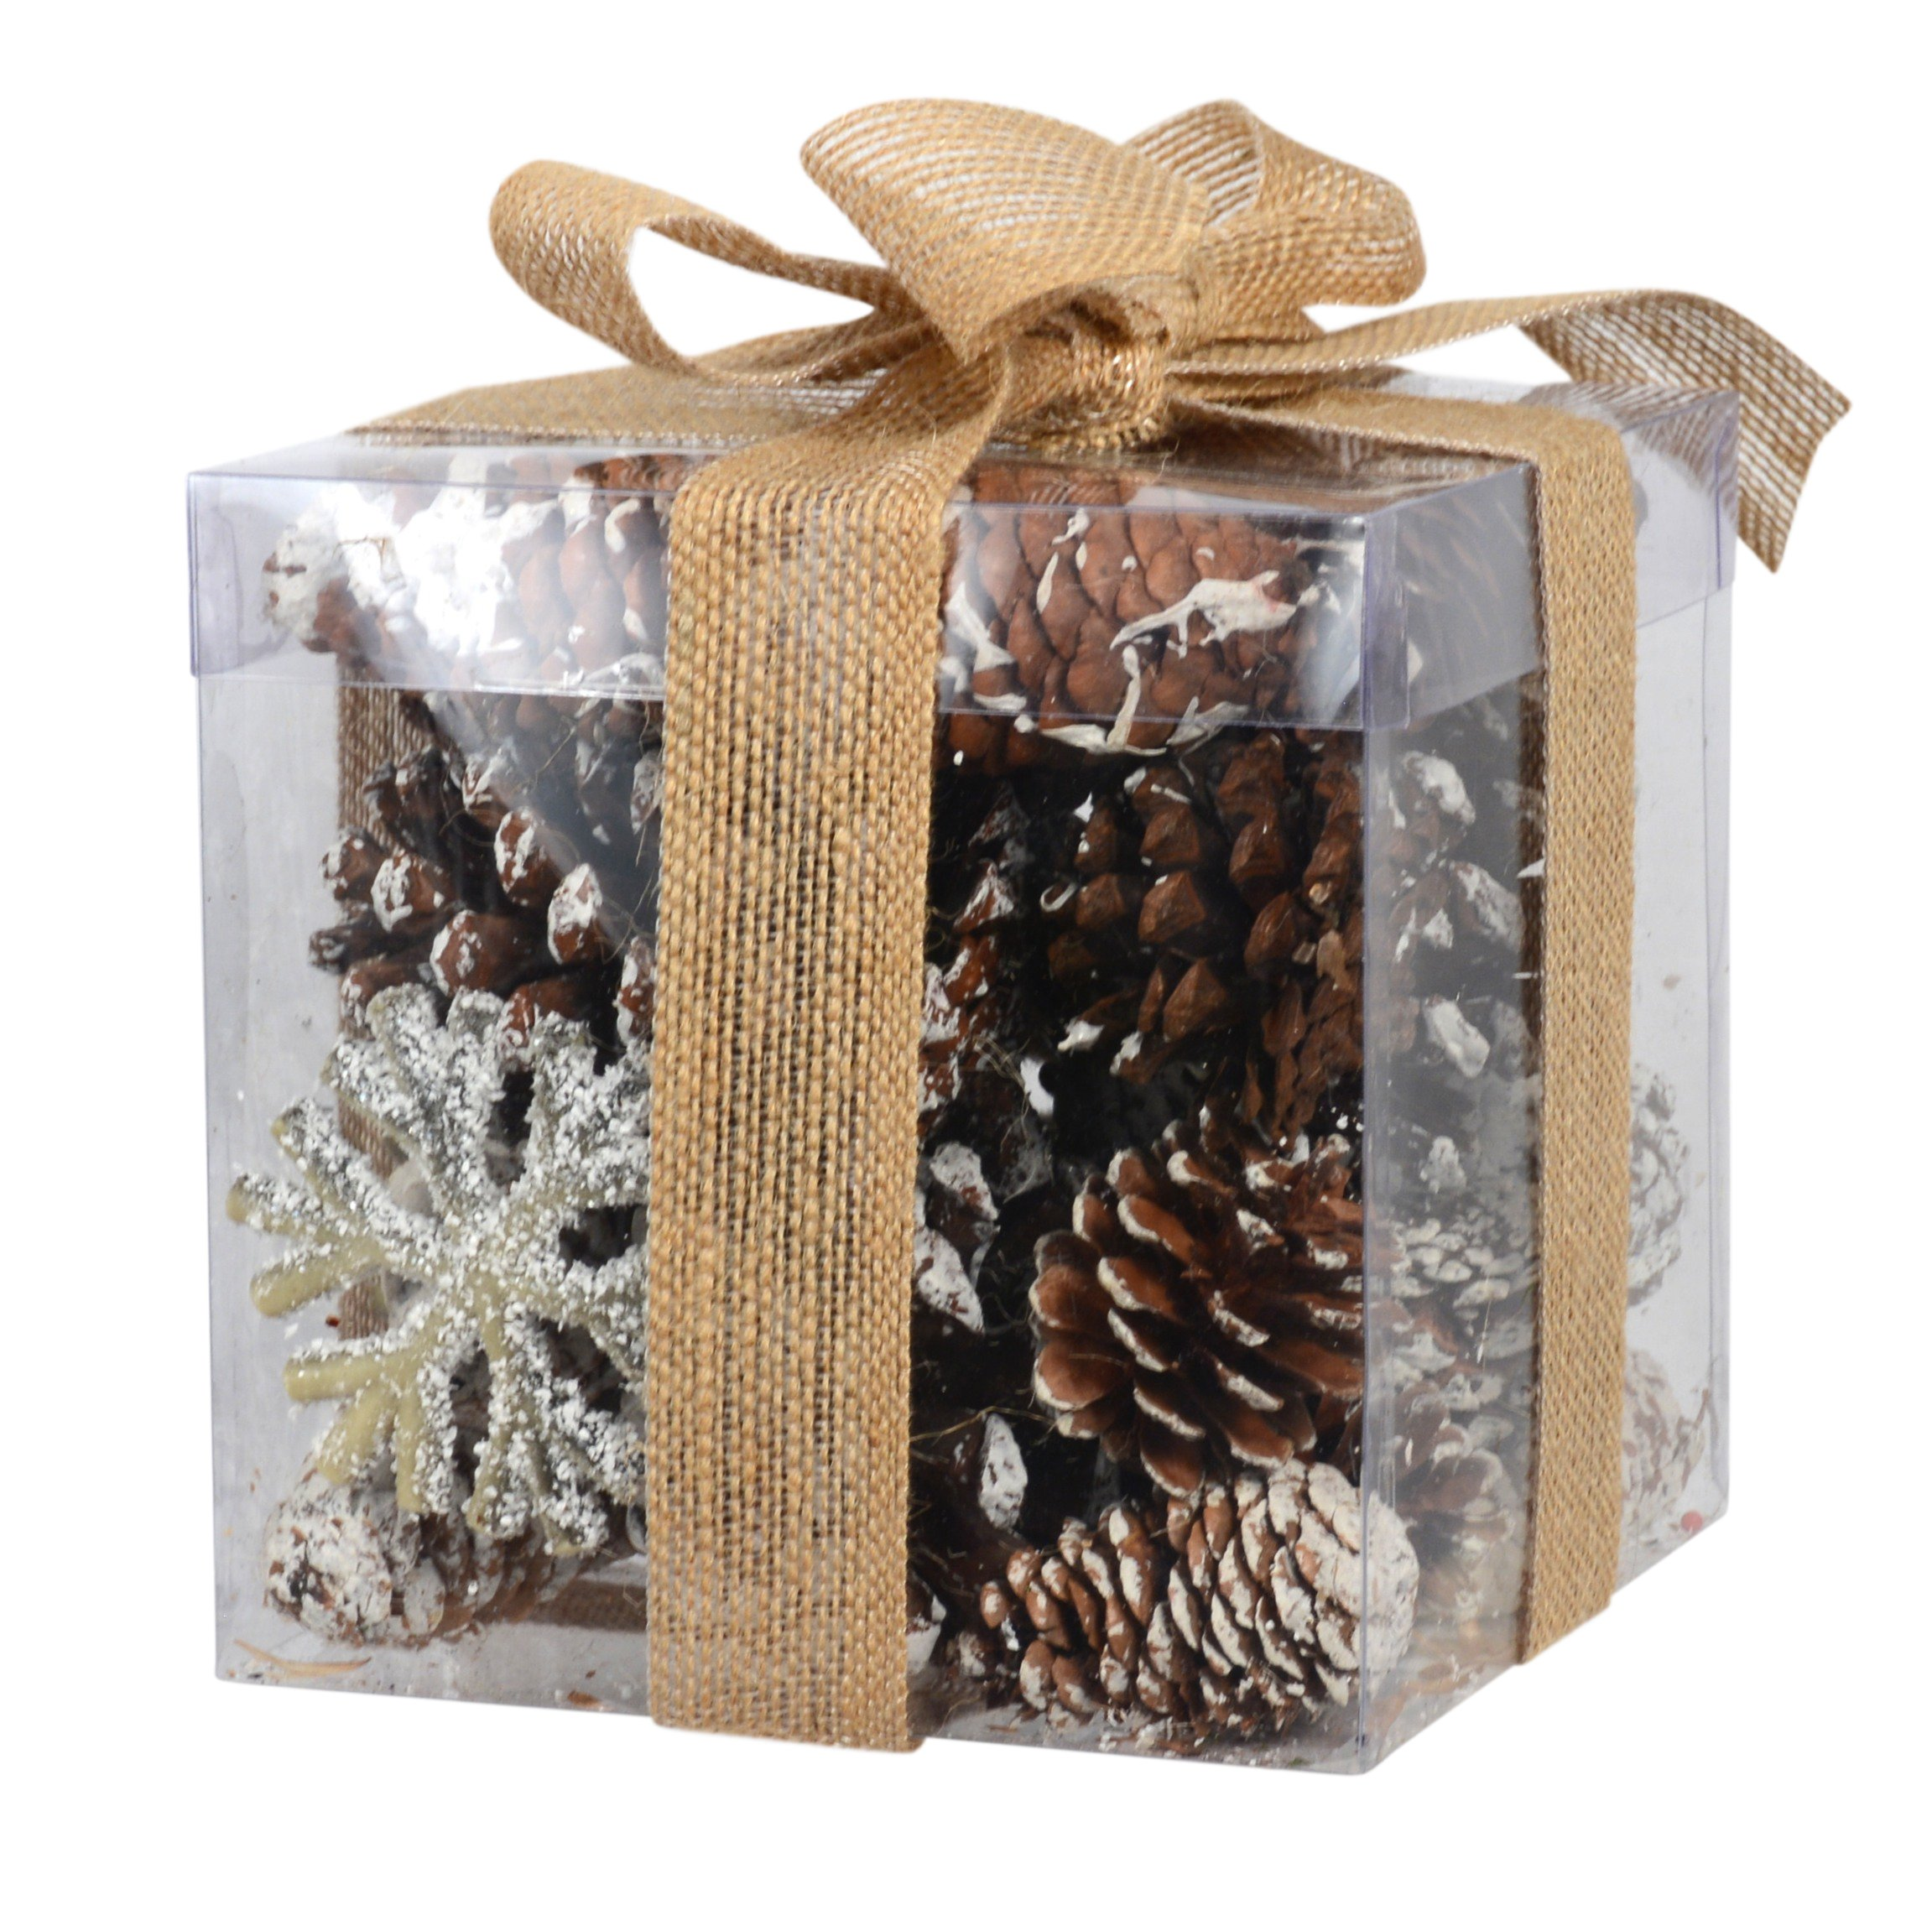 Assorted Snow Frosted Pines Cone and Glittered Snowflakes Bowl and Vase Filler in Box 6 Inch x 6 Inch x 6 Inch